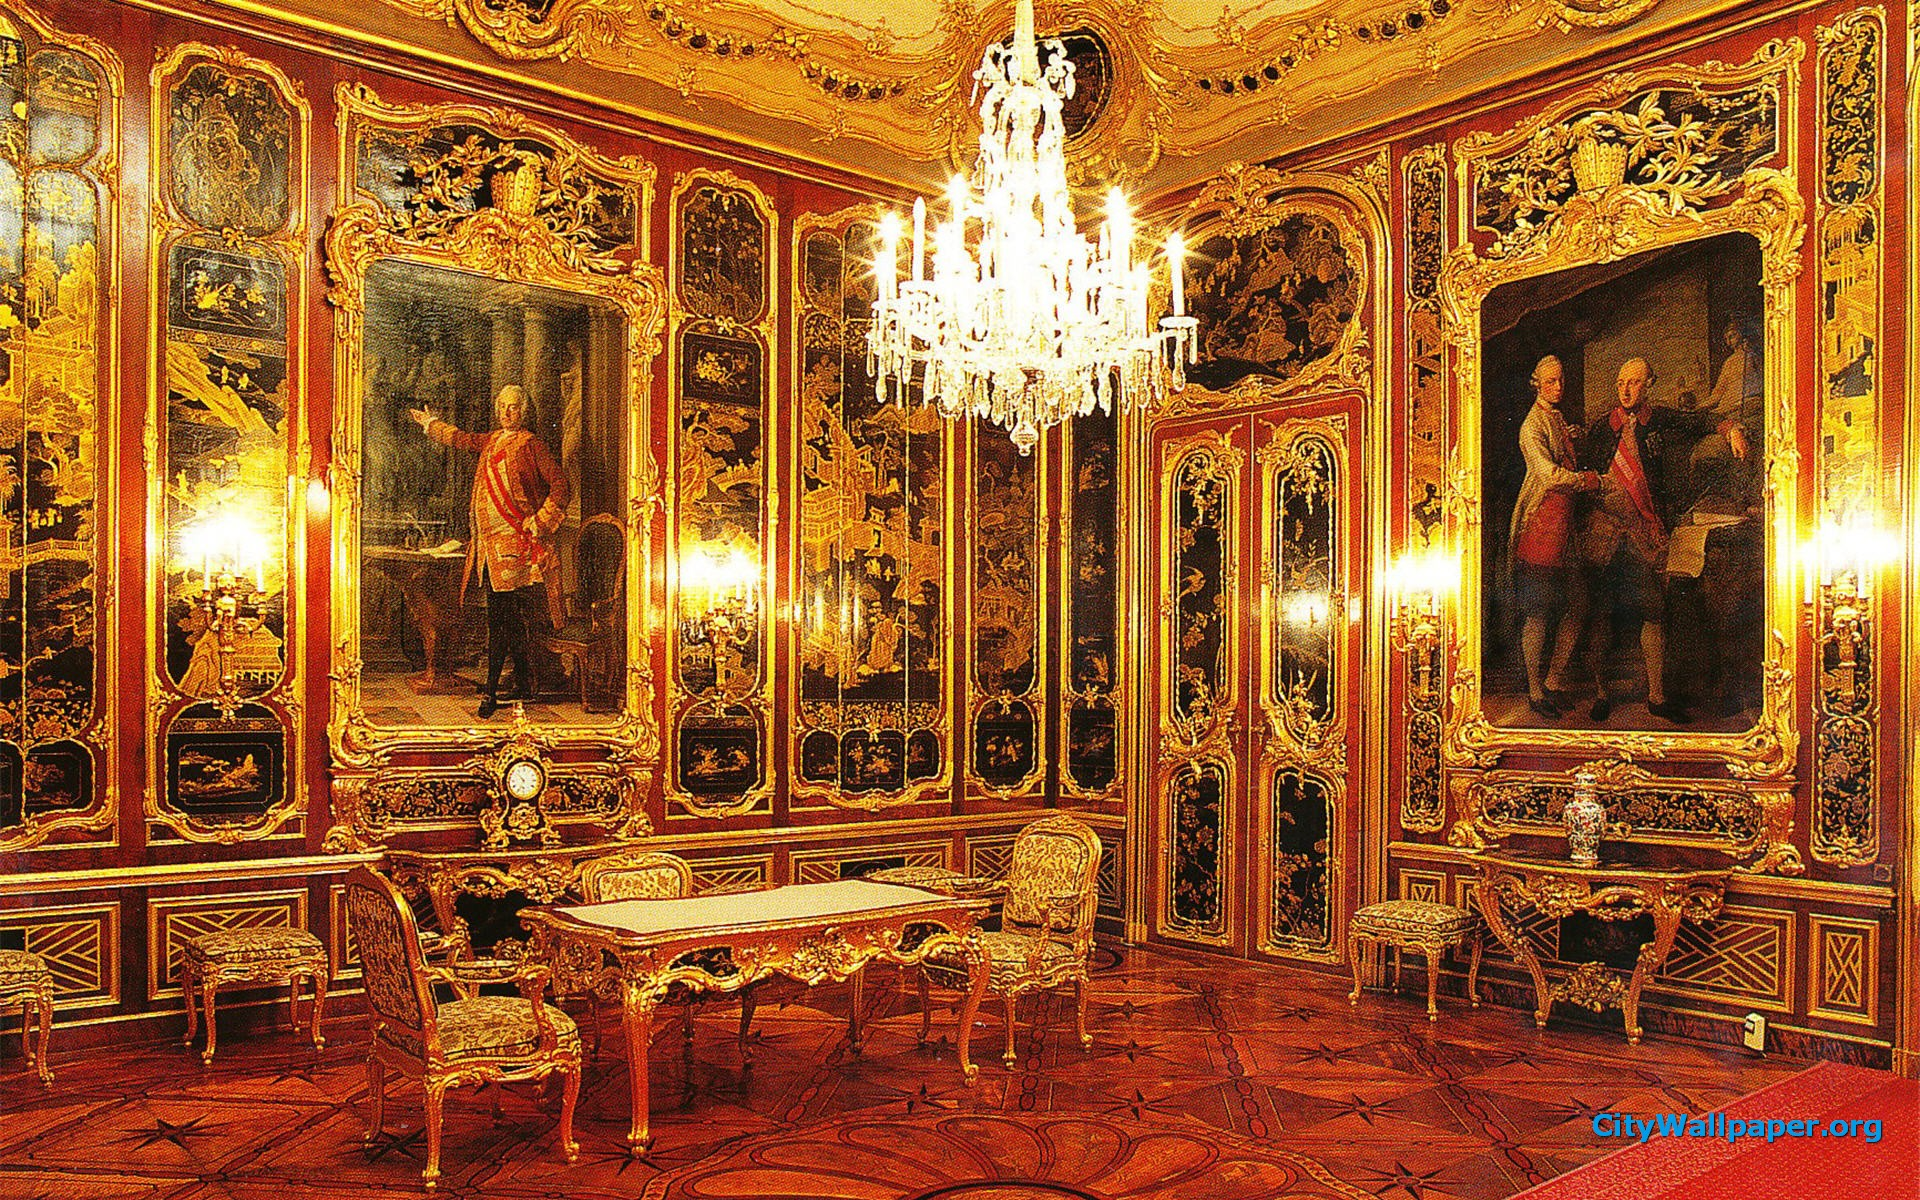 Zoo York Schonbrunn Palace Interior 1129053 With Resolutions 1920 1920x1200